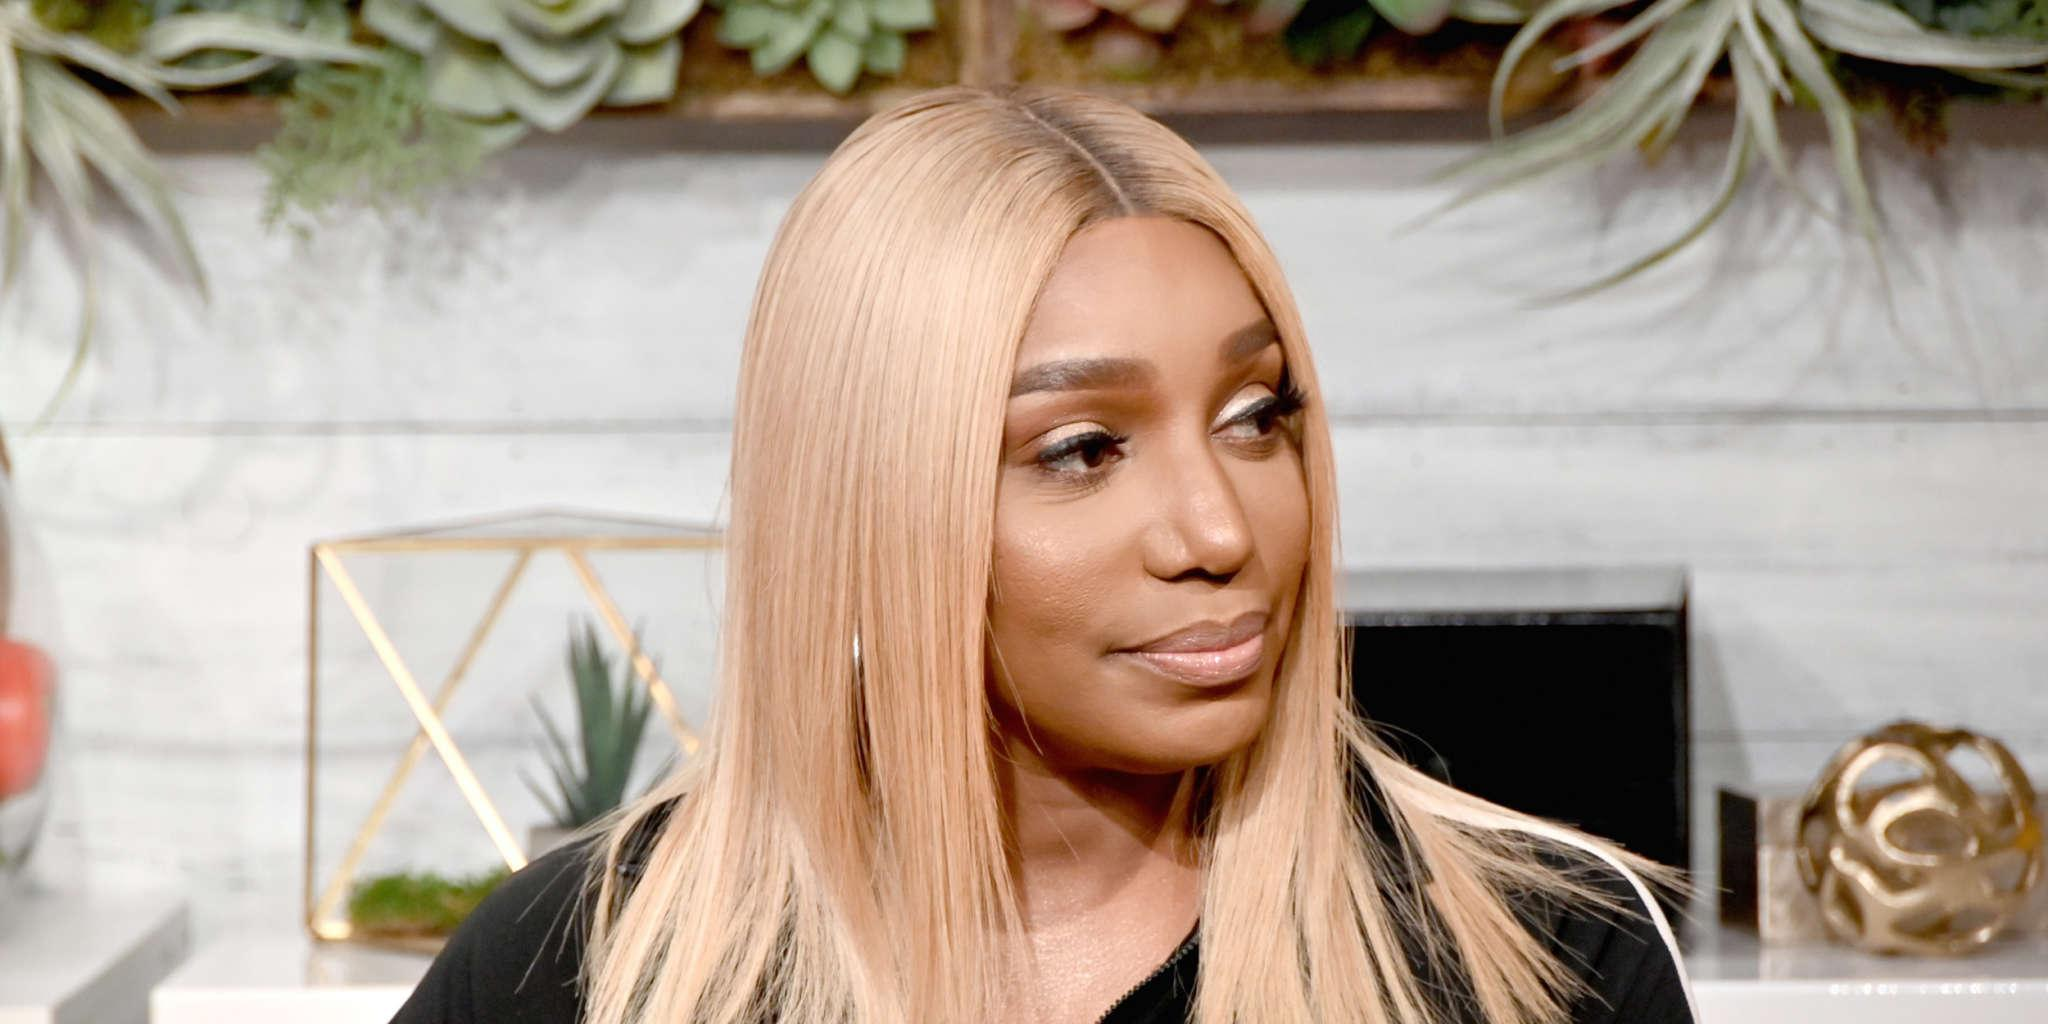 NeNe Leakes' Latest Photos Have Fans Bringing Up Cosmetic Surgery Again